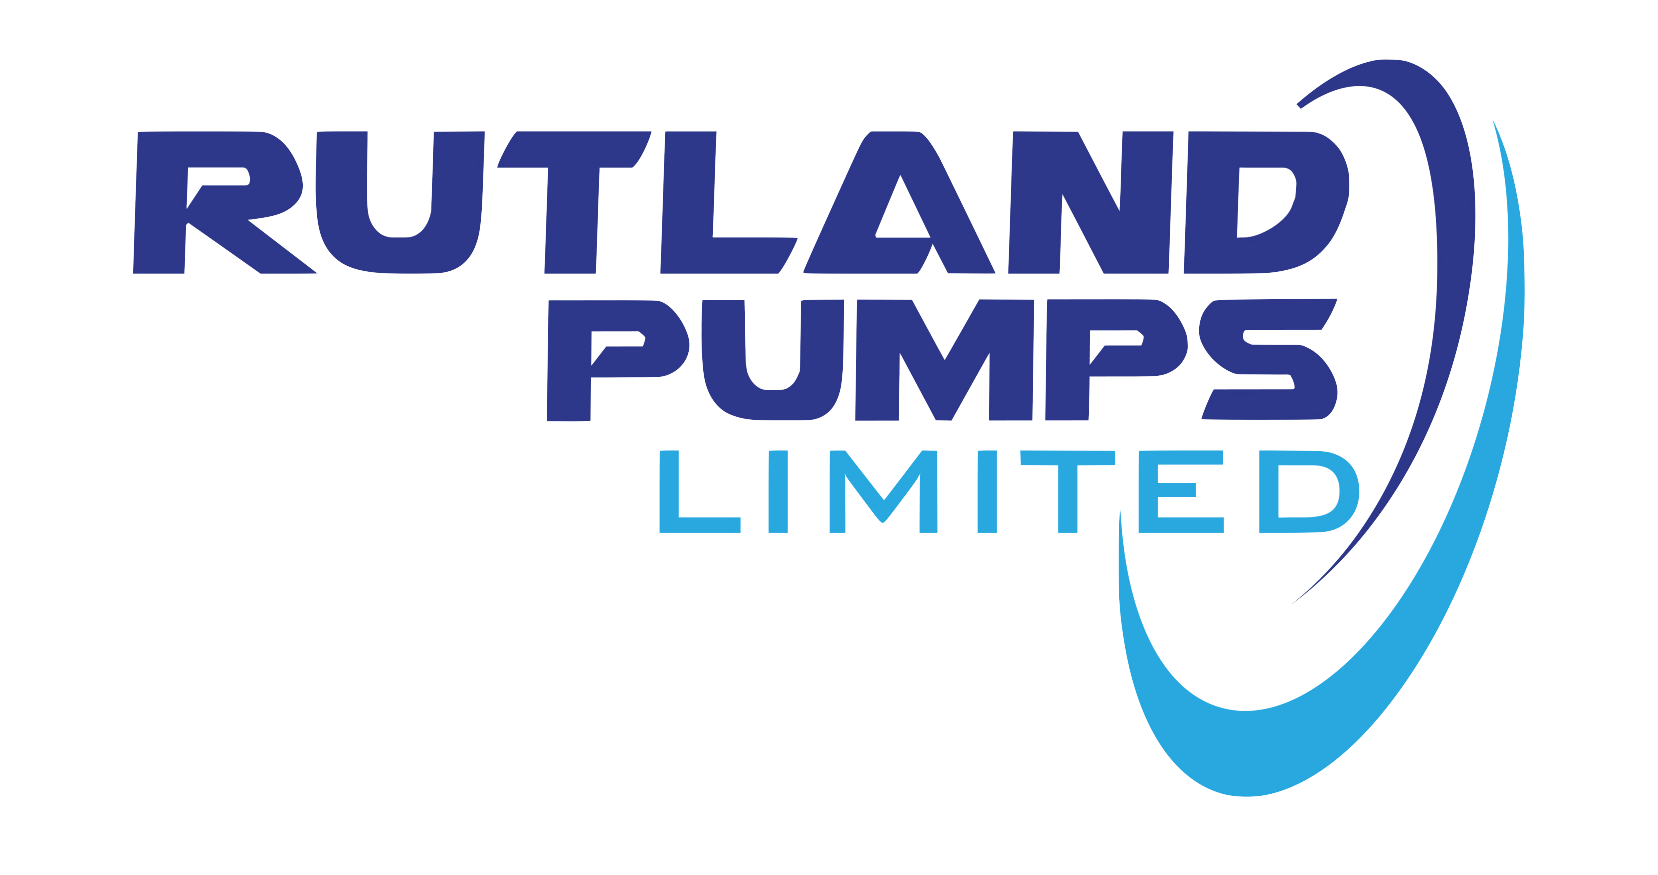 Rutland Pumps Limited